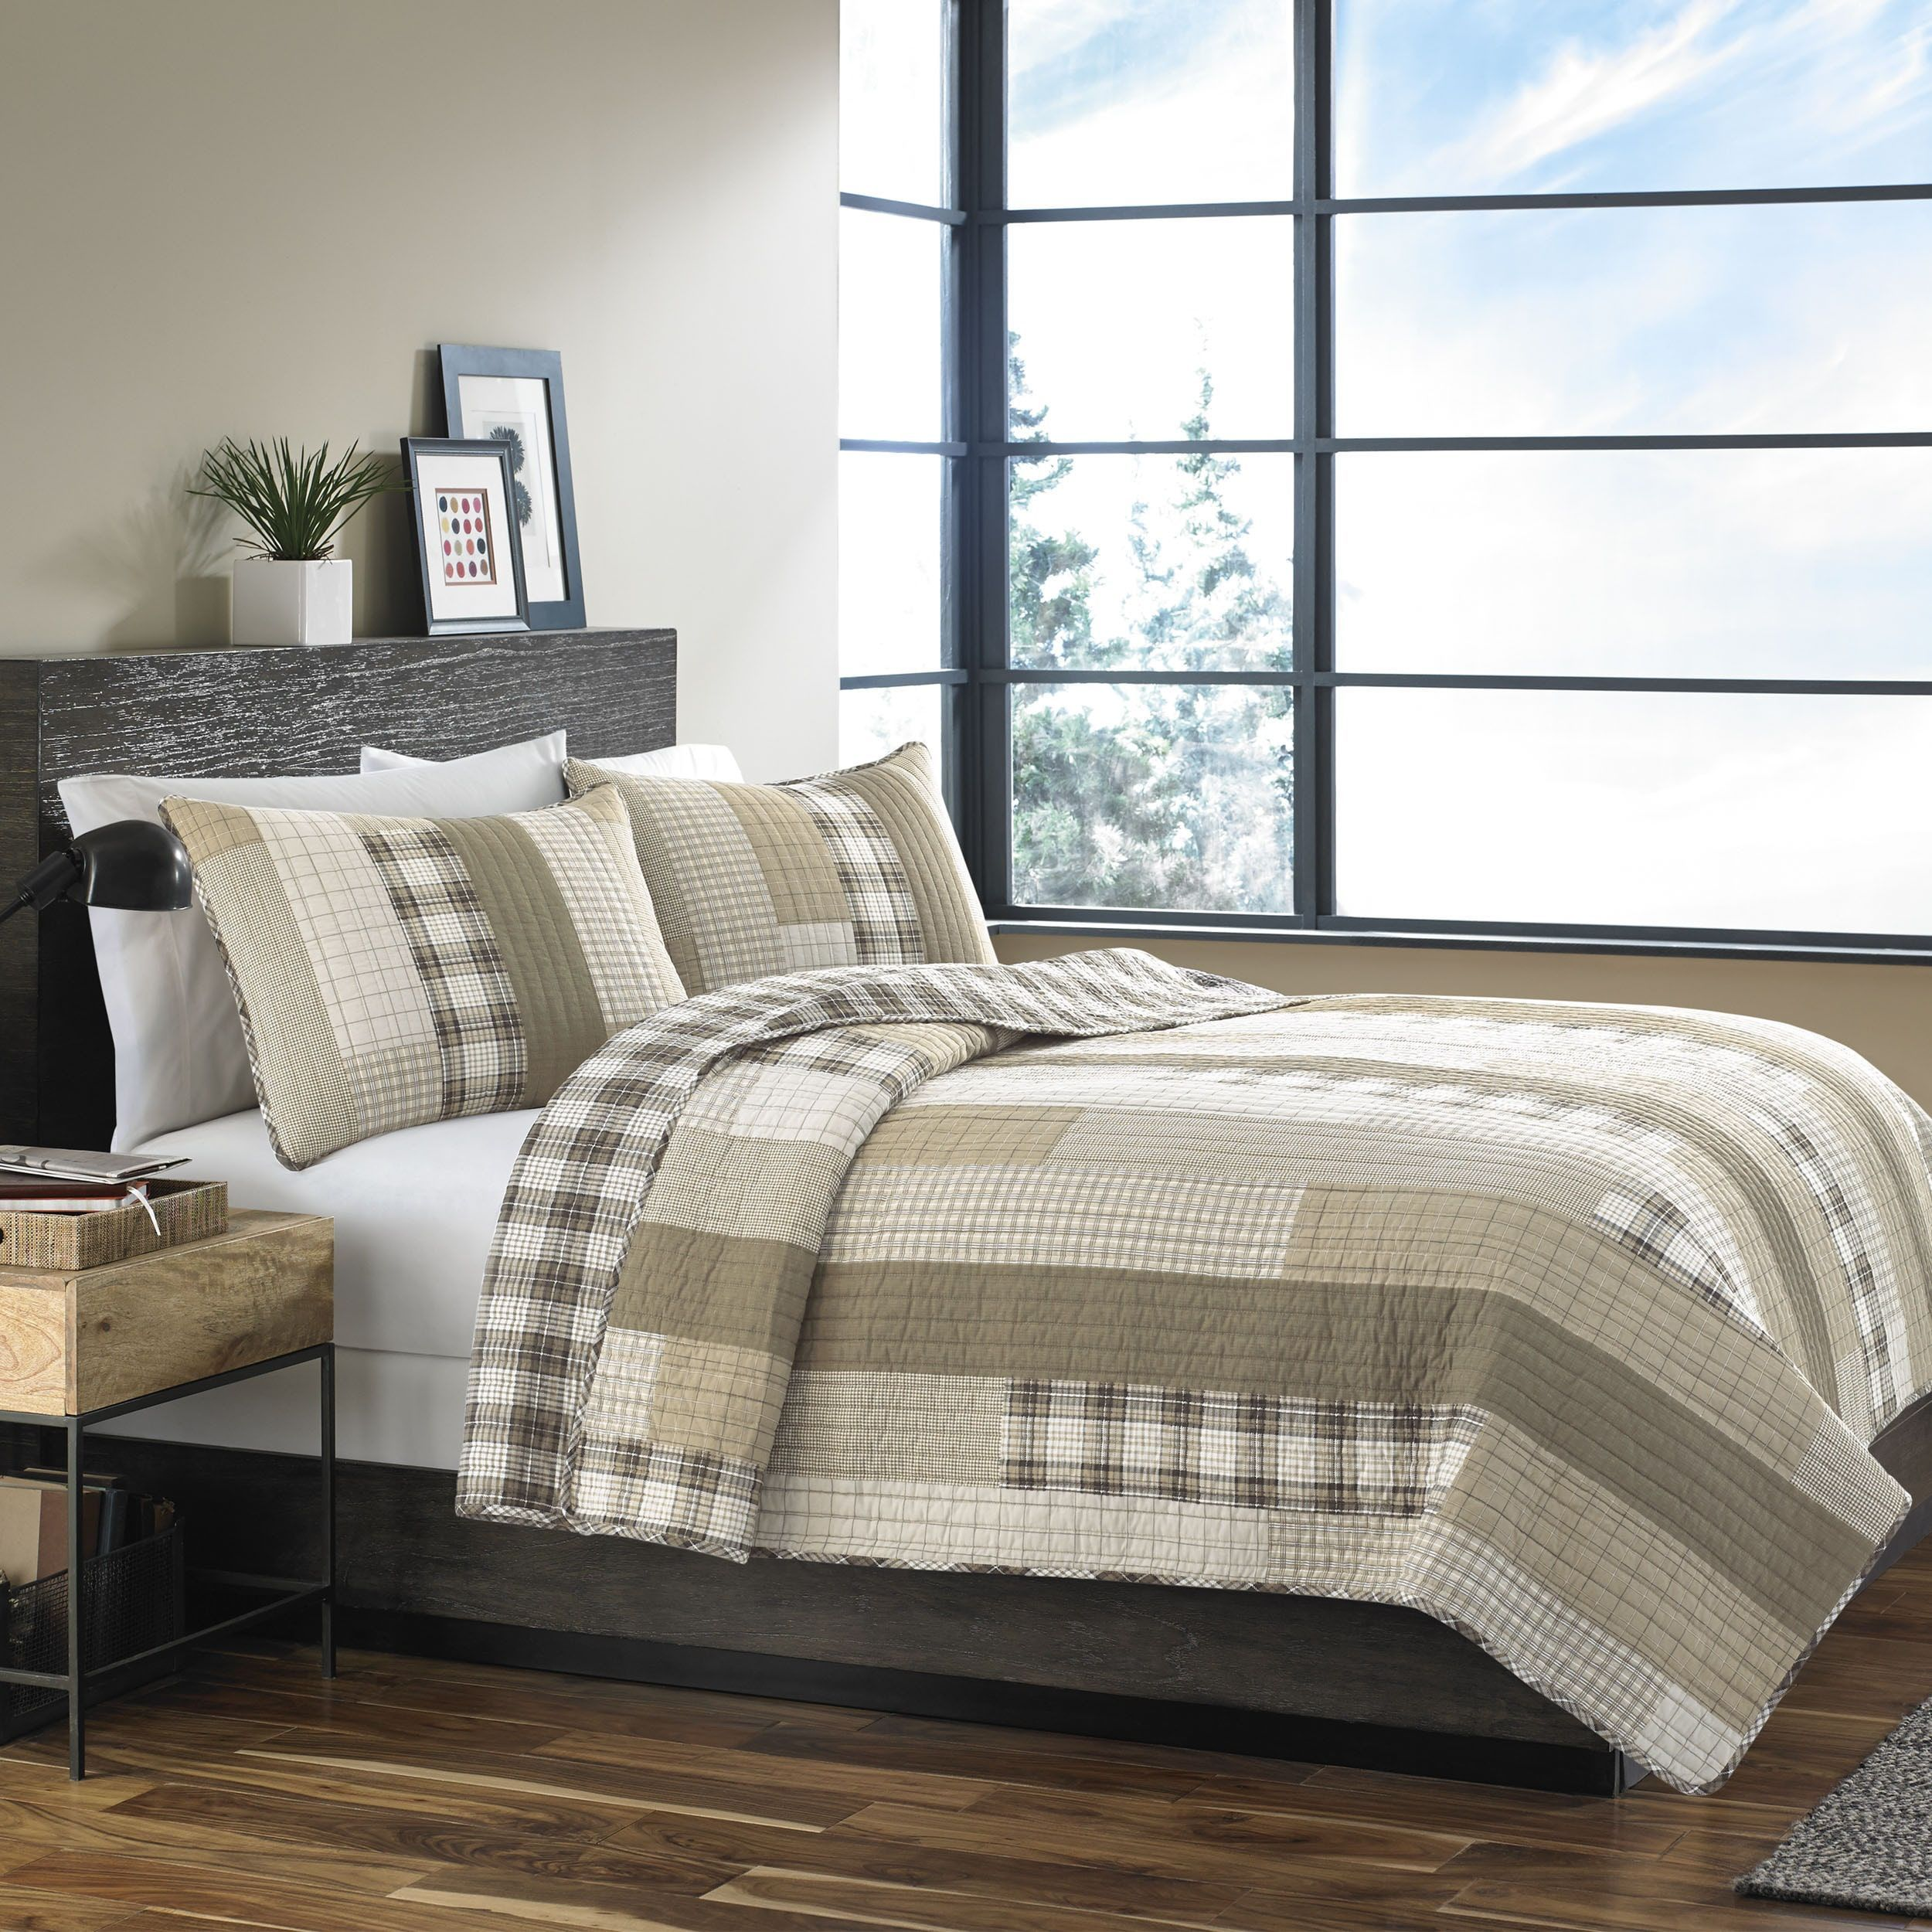 down bed bauer eddie king club sams bedding reviews givewy trget alternative rugged comforter set plaid review